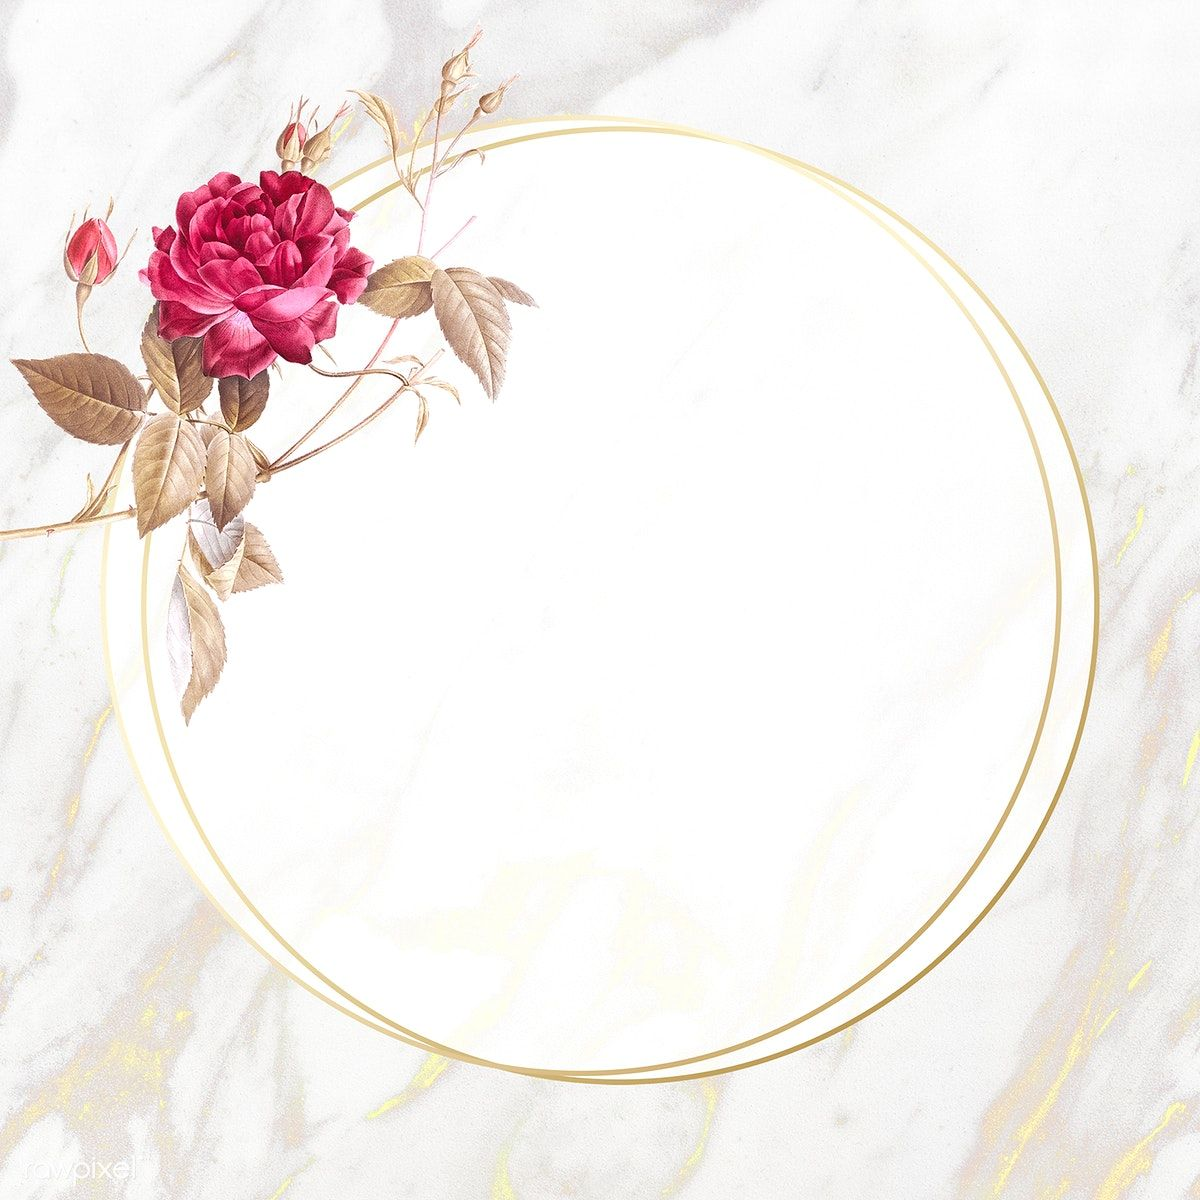 Download Premium Illustration Of Round Flower Frame On Beige Marble Flower Frame Flower Background Iphone Flower Background Wallpaper